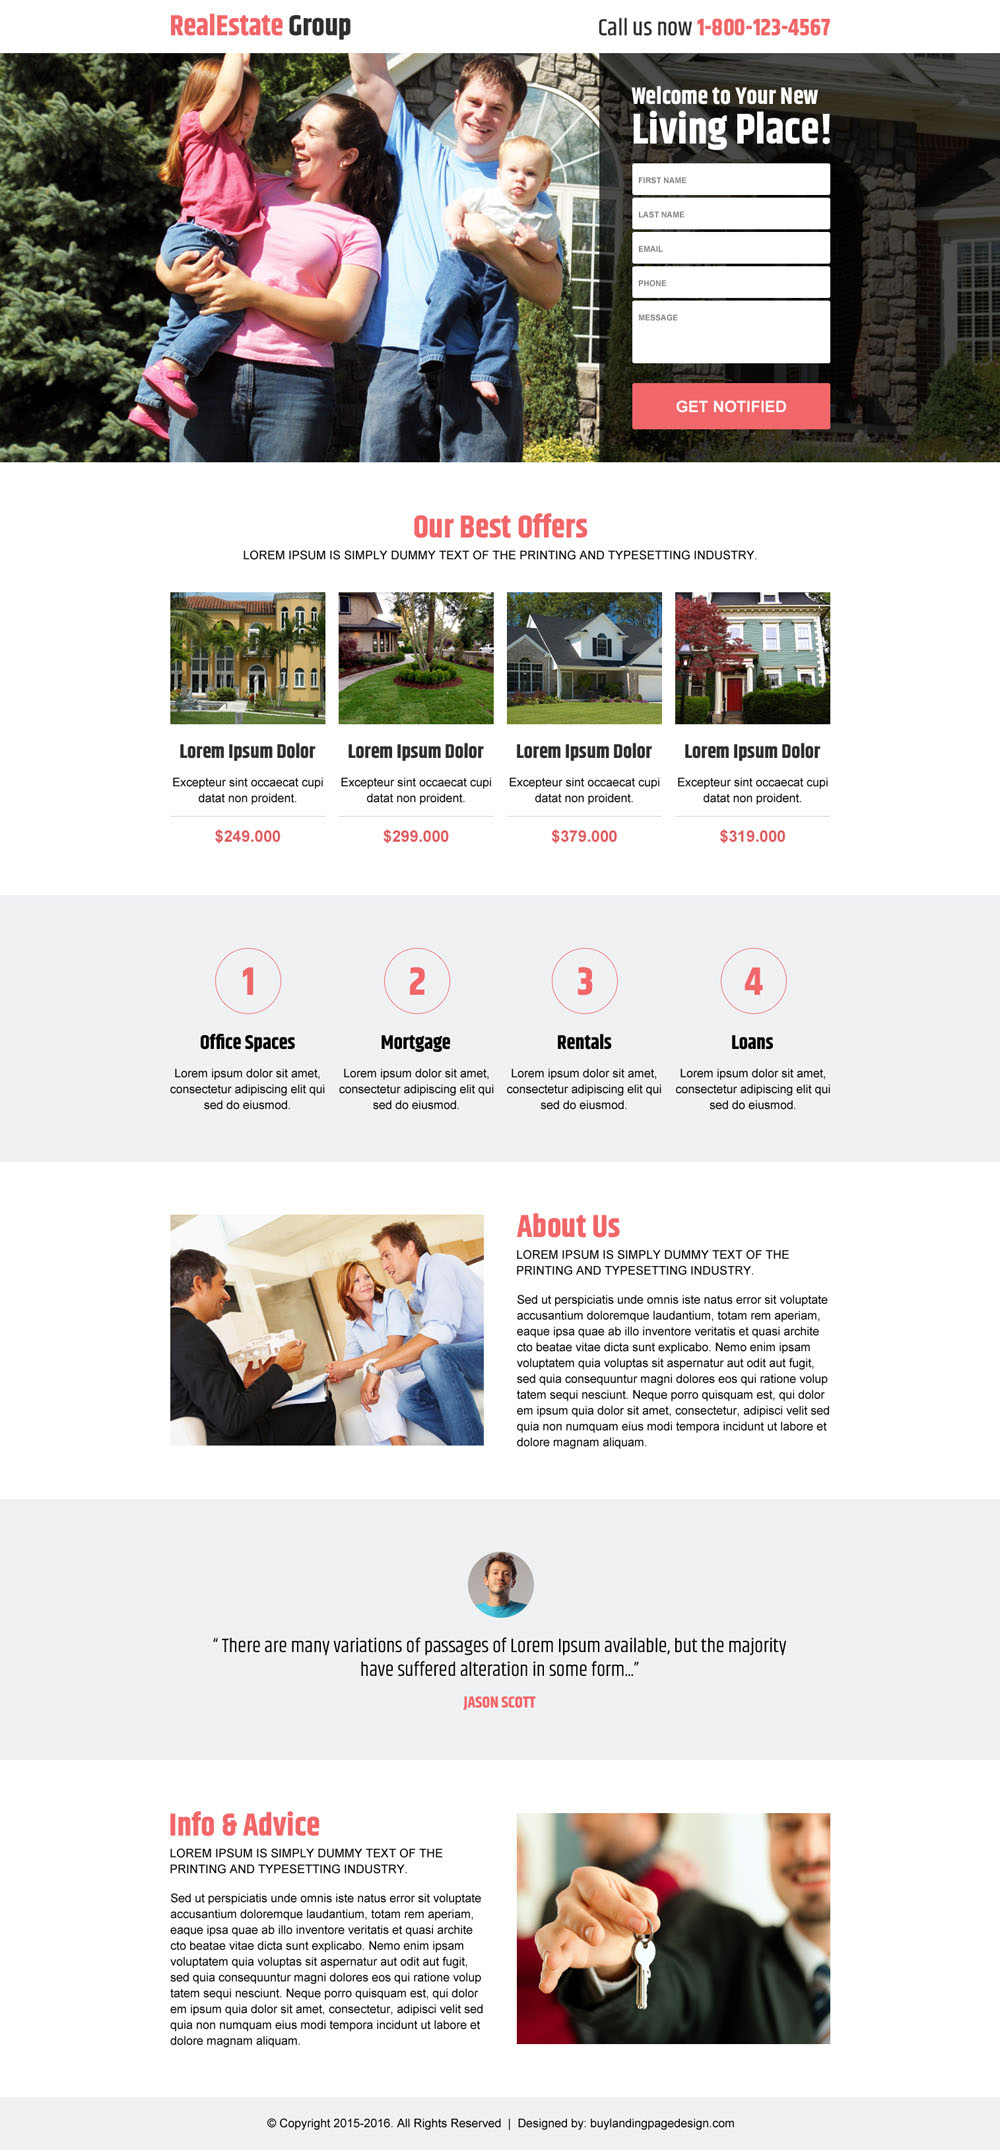 real-estate-group-best-deals-lead-generation-responsive-landing-page-design-011